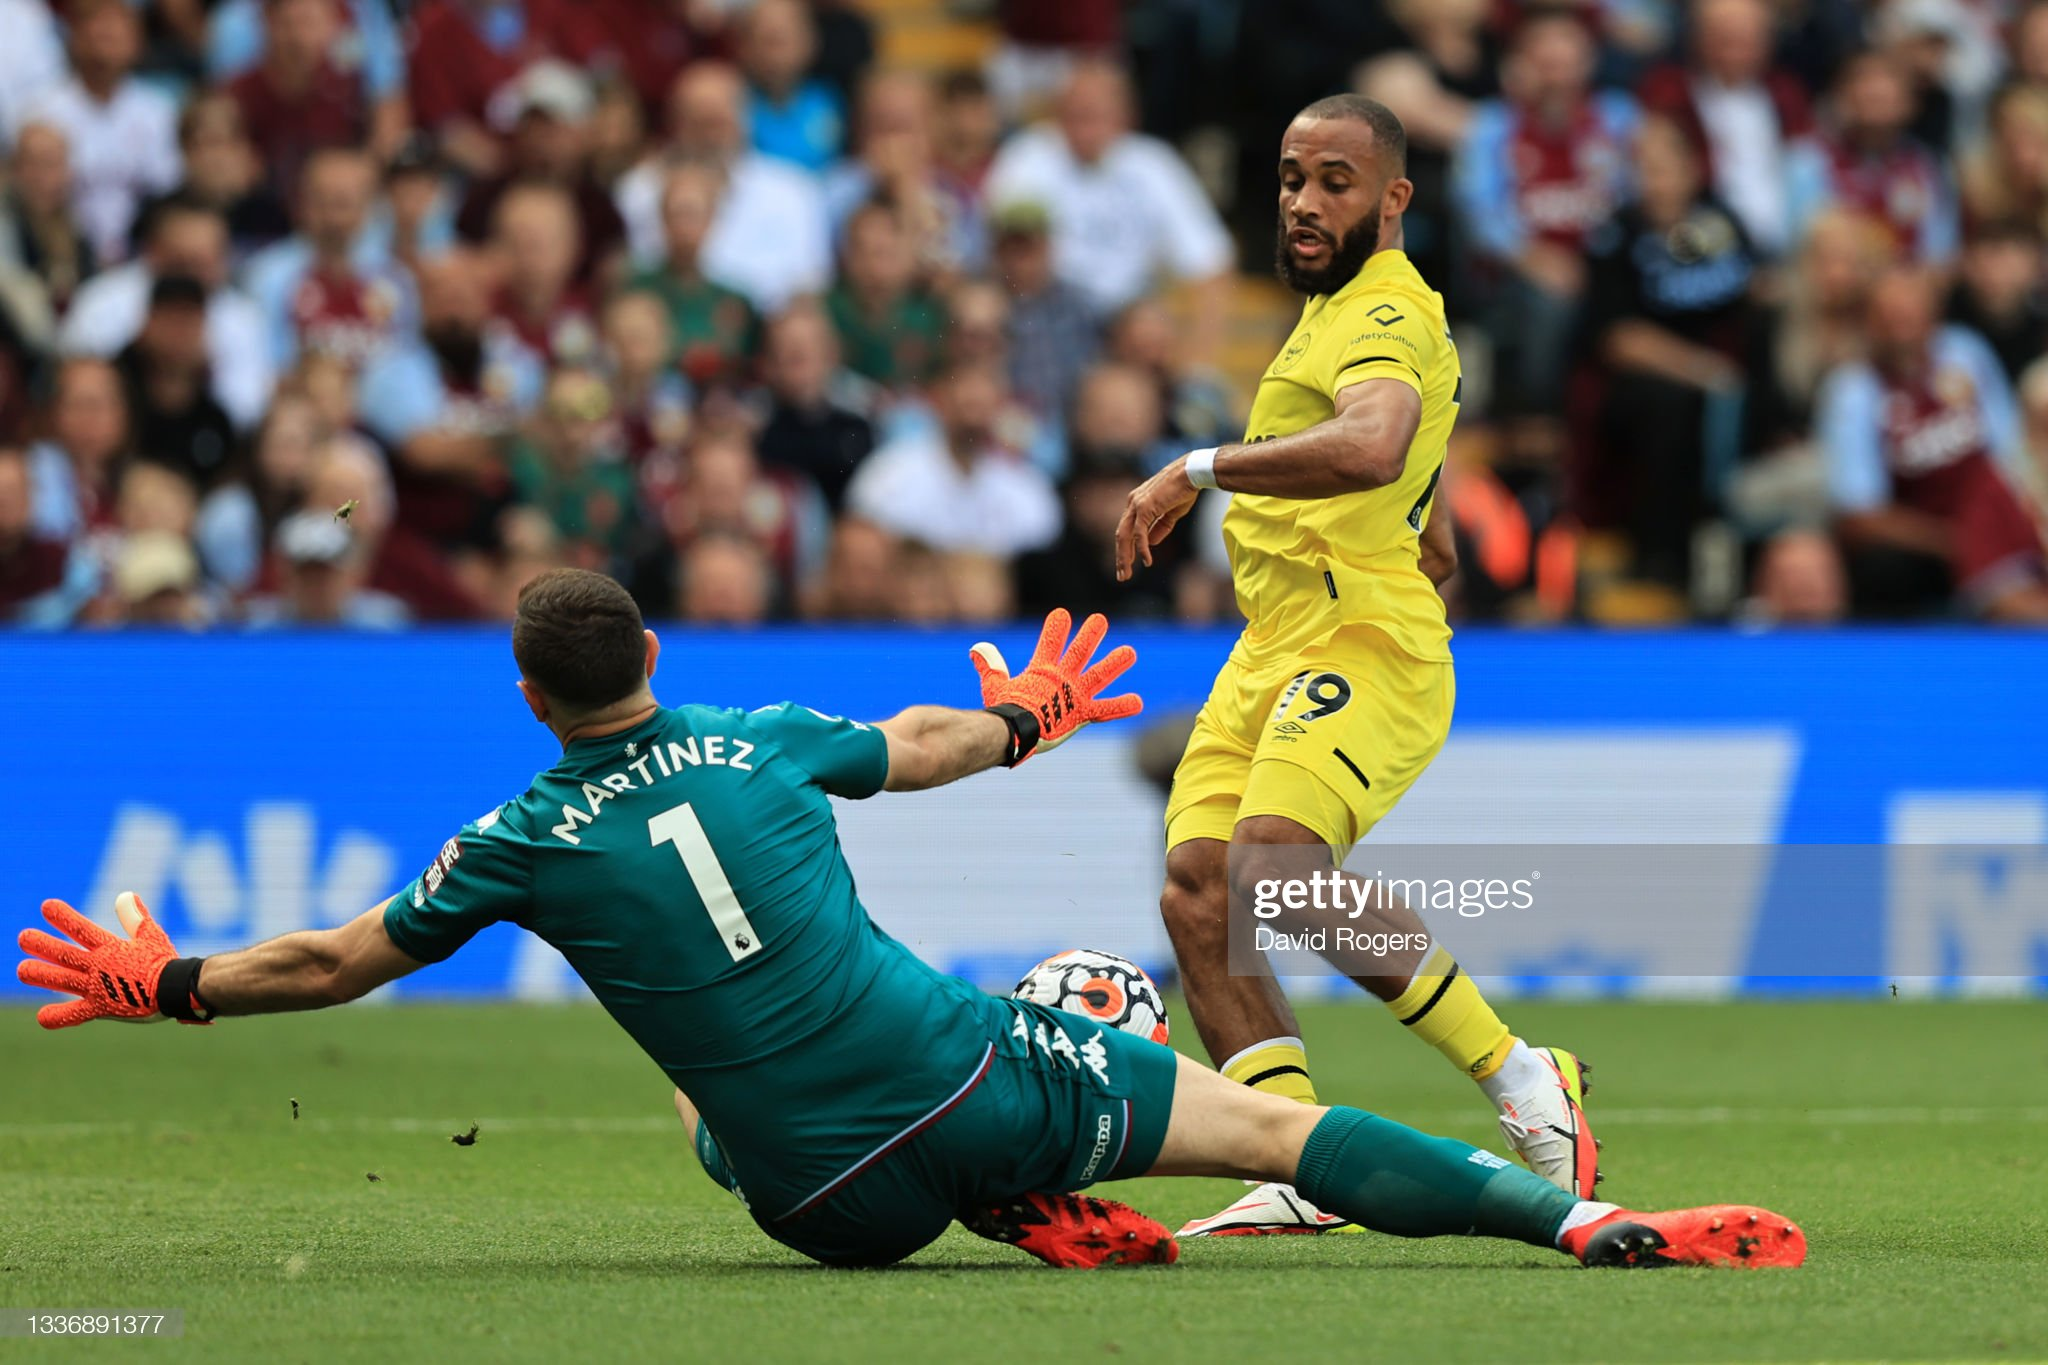 IMAGE(https://media.gettyimages.com/photos/emiliano-martinez-of-aston-villa-saves-form-bryan-mbeumo-of-brentford-picture-id1336891377?s=2048x2048)